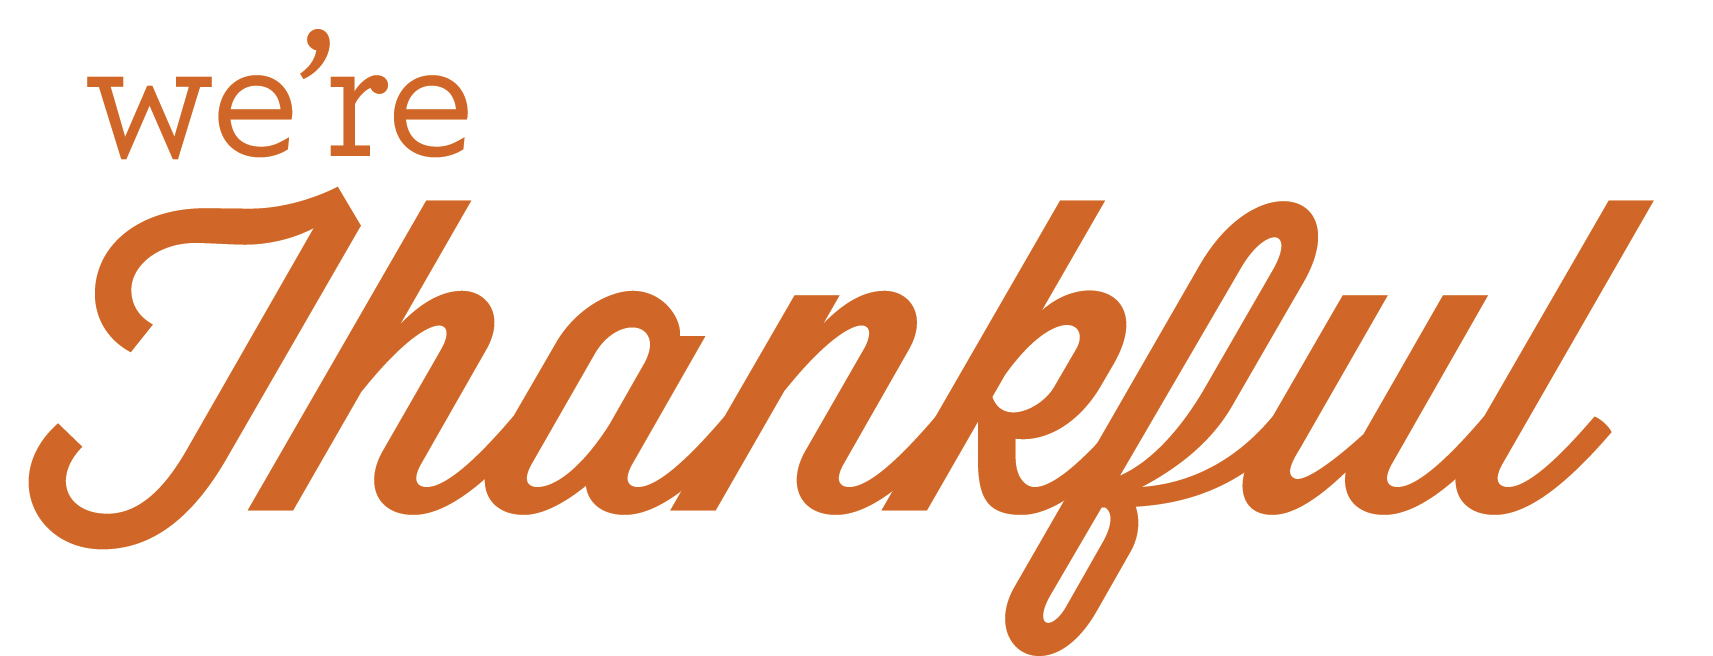 Thankful people clipart.